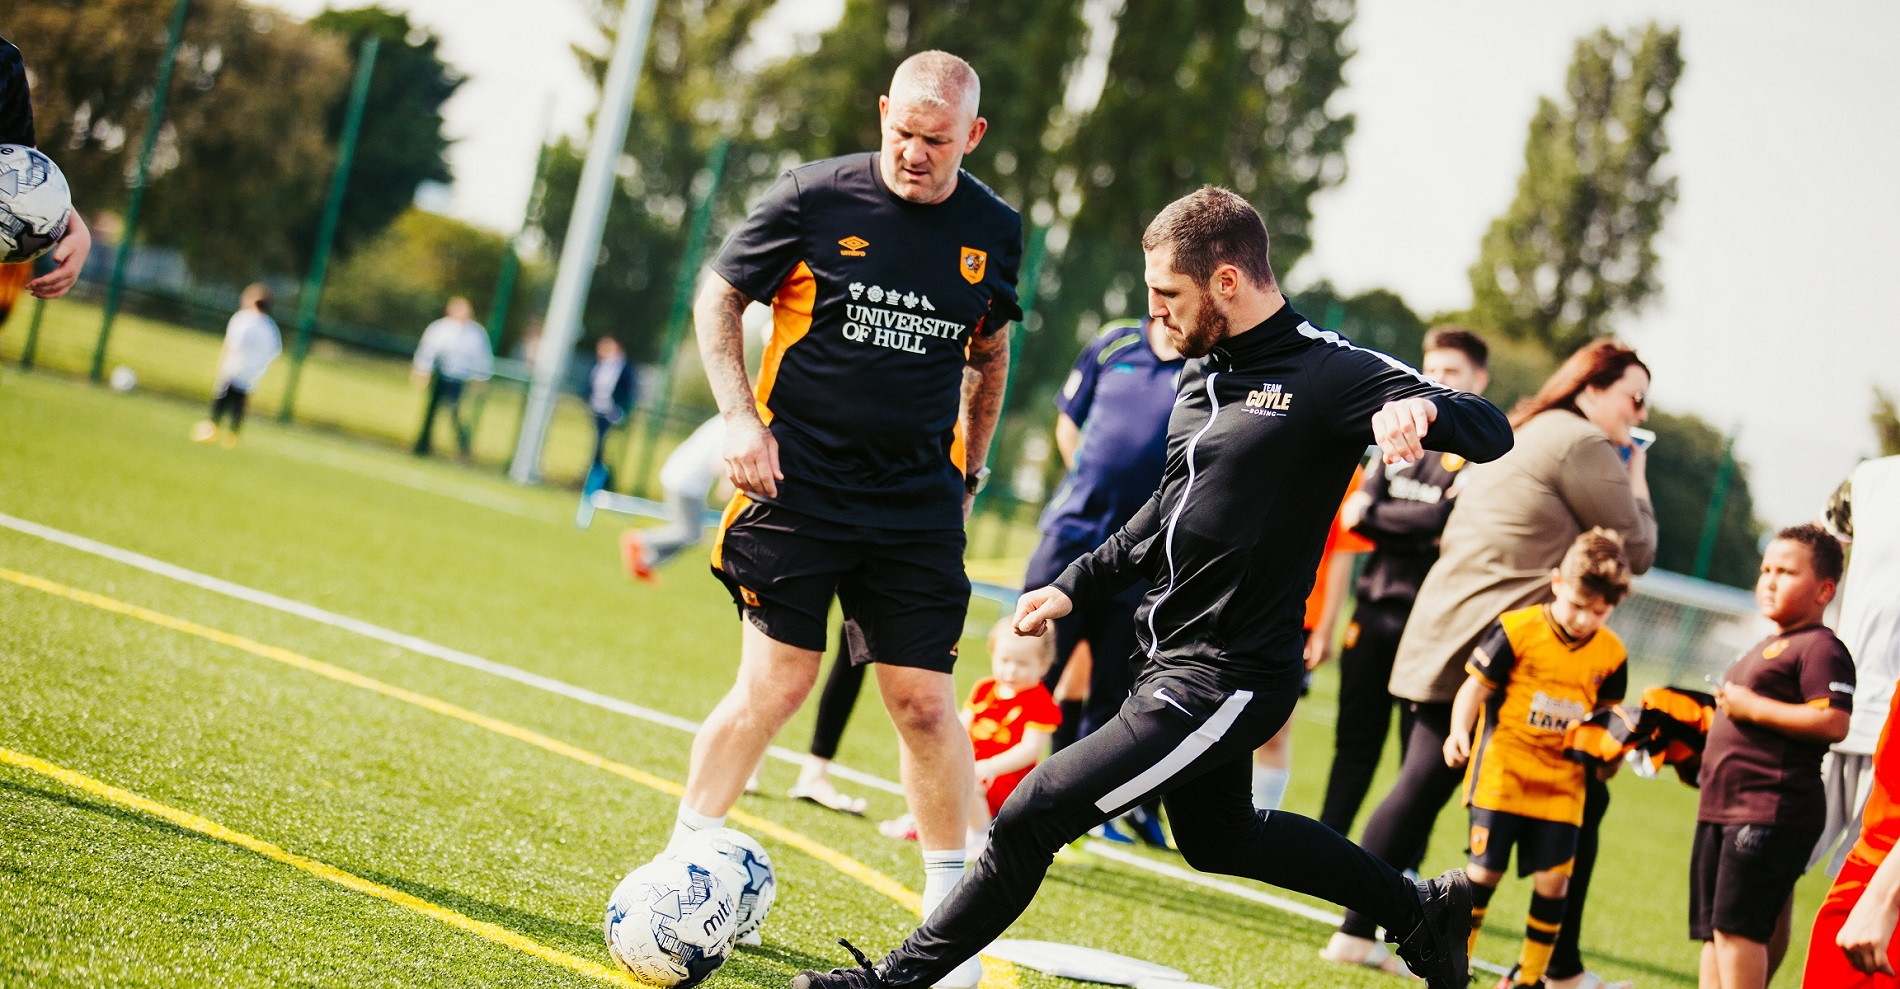 £3.5-million community football hub opened at University of Hull